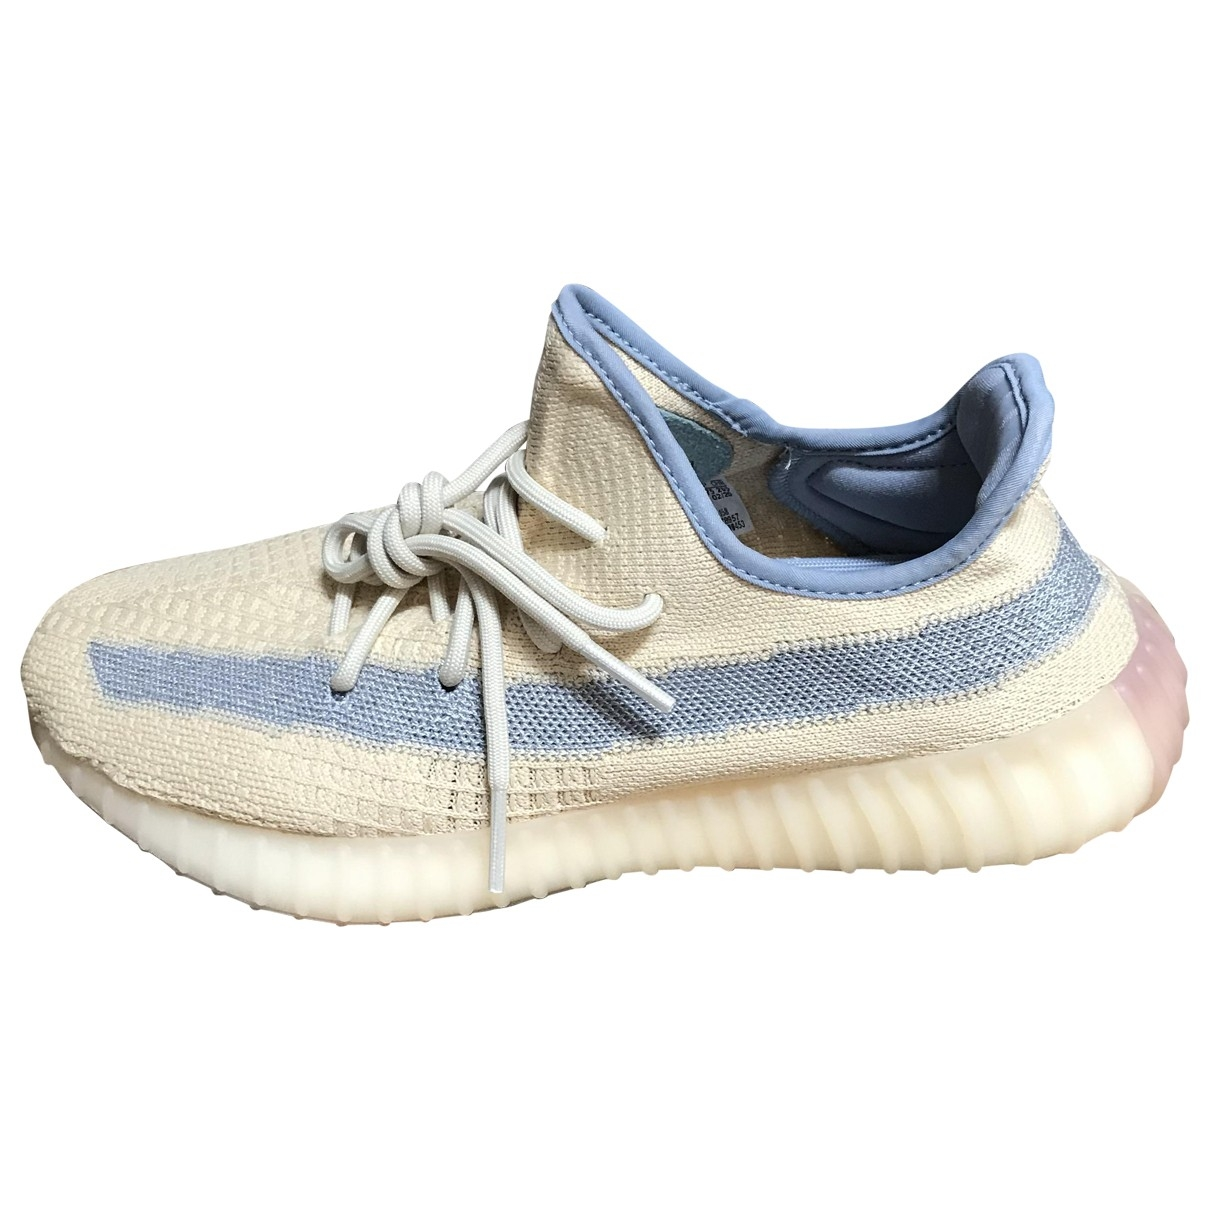 Yeezy X Adidas - Baskets Boost 350 V2 pour homme en toile - beige